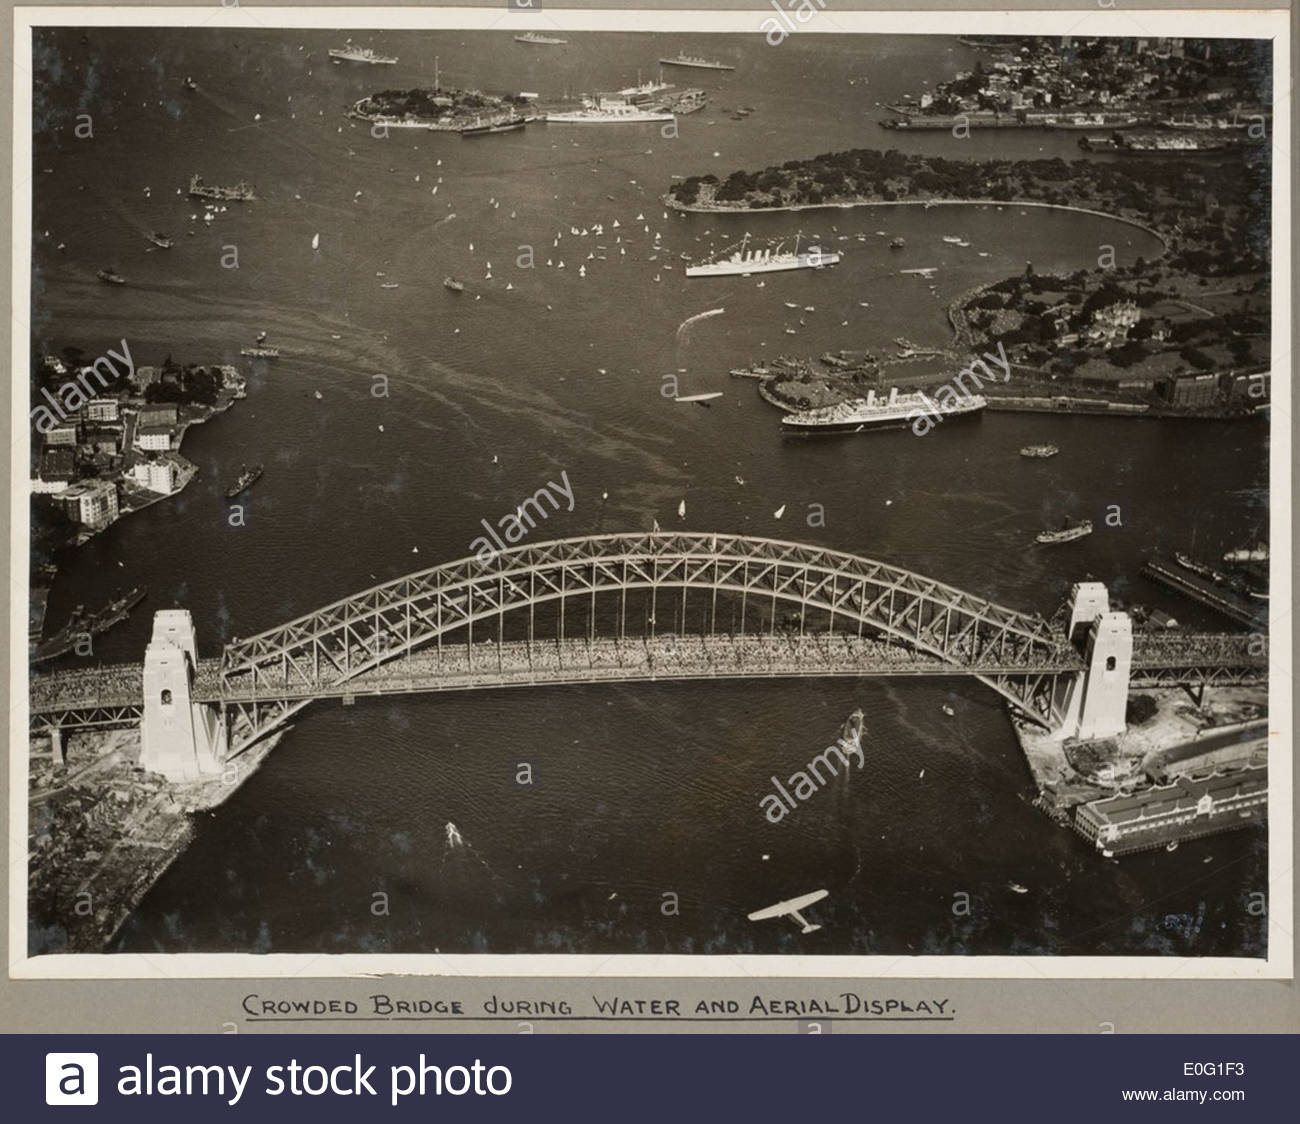 Sydney Harbour Bridge crowded with onlookers during the water and aerial display, 19 March 1932 - Stock Image